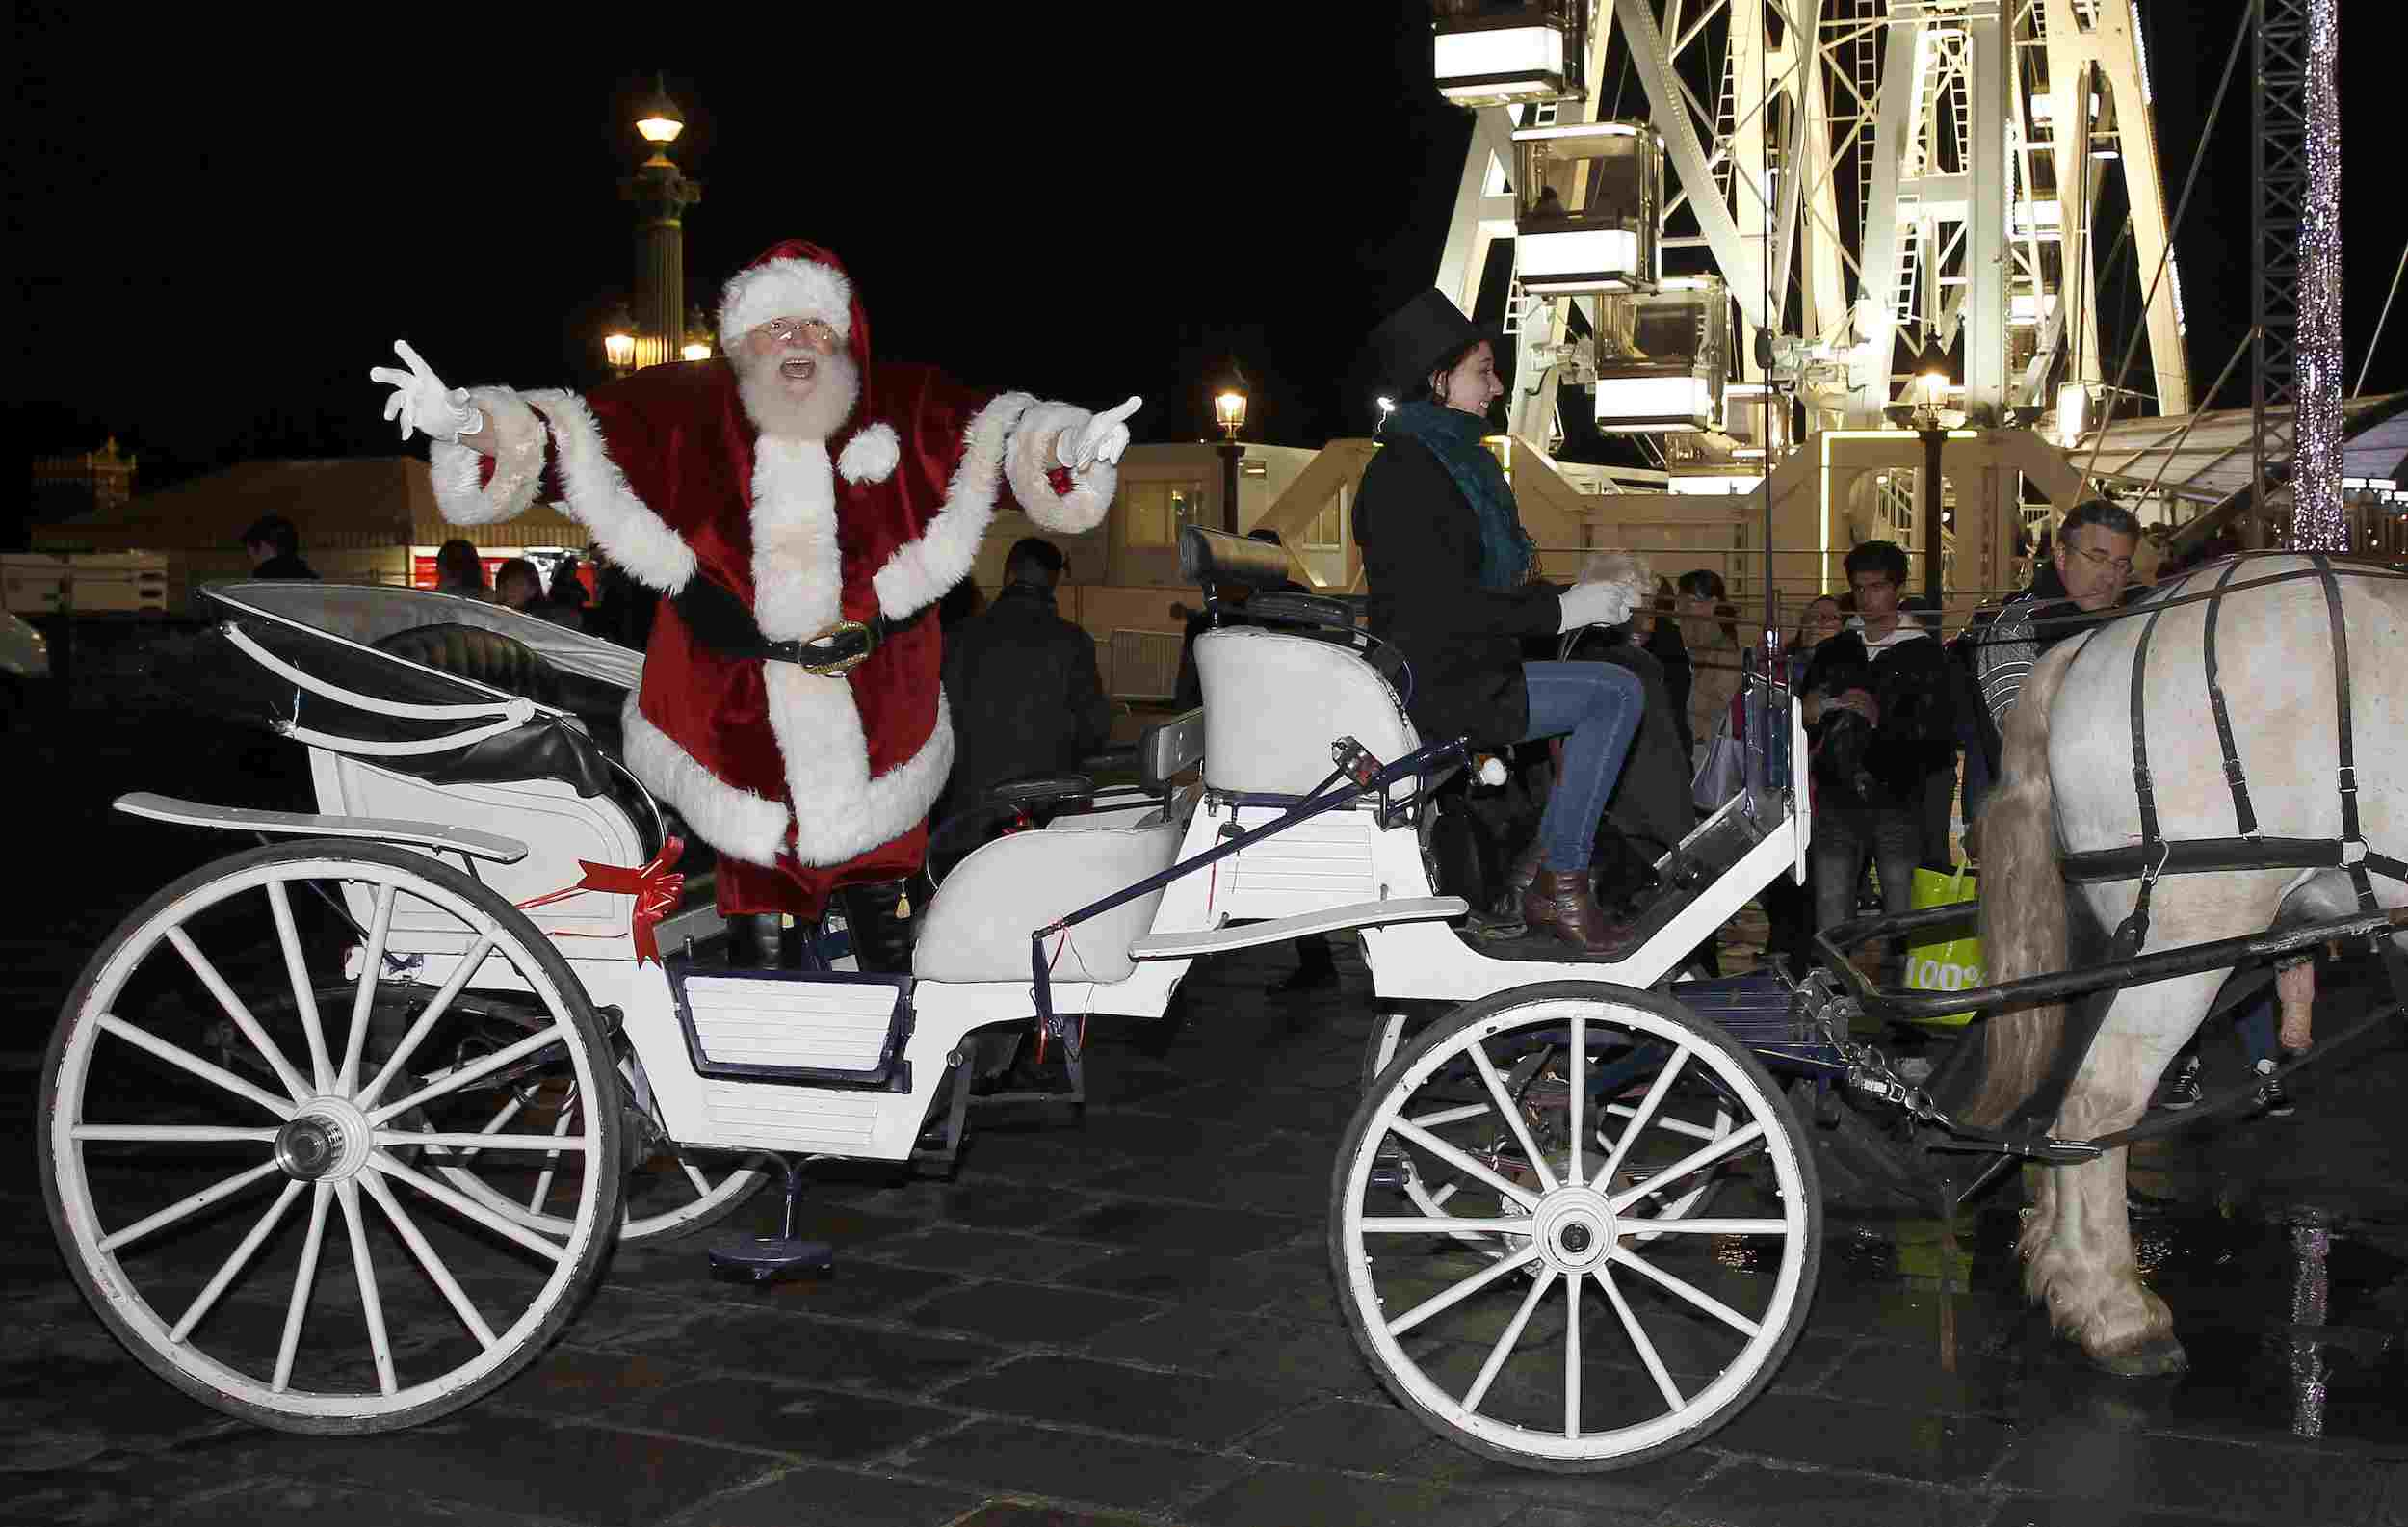 Santa and his horse-drawn carriage in Paris, France in 2014